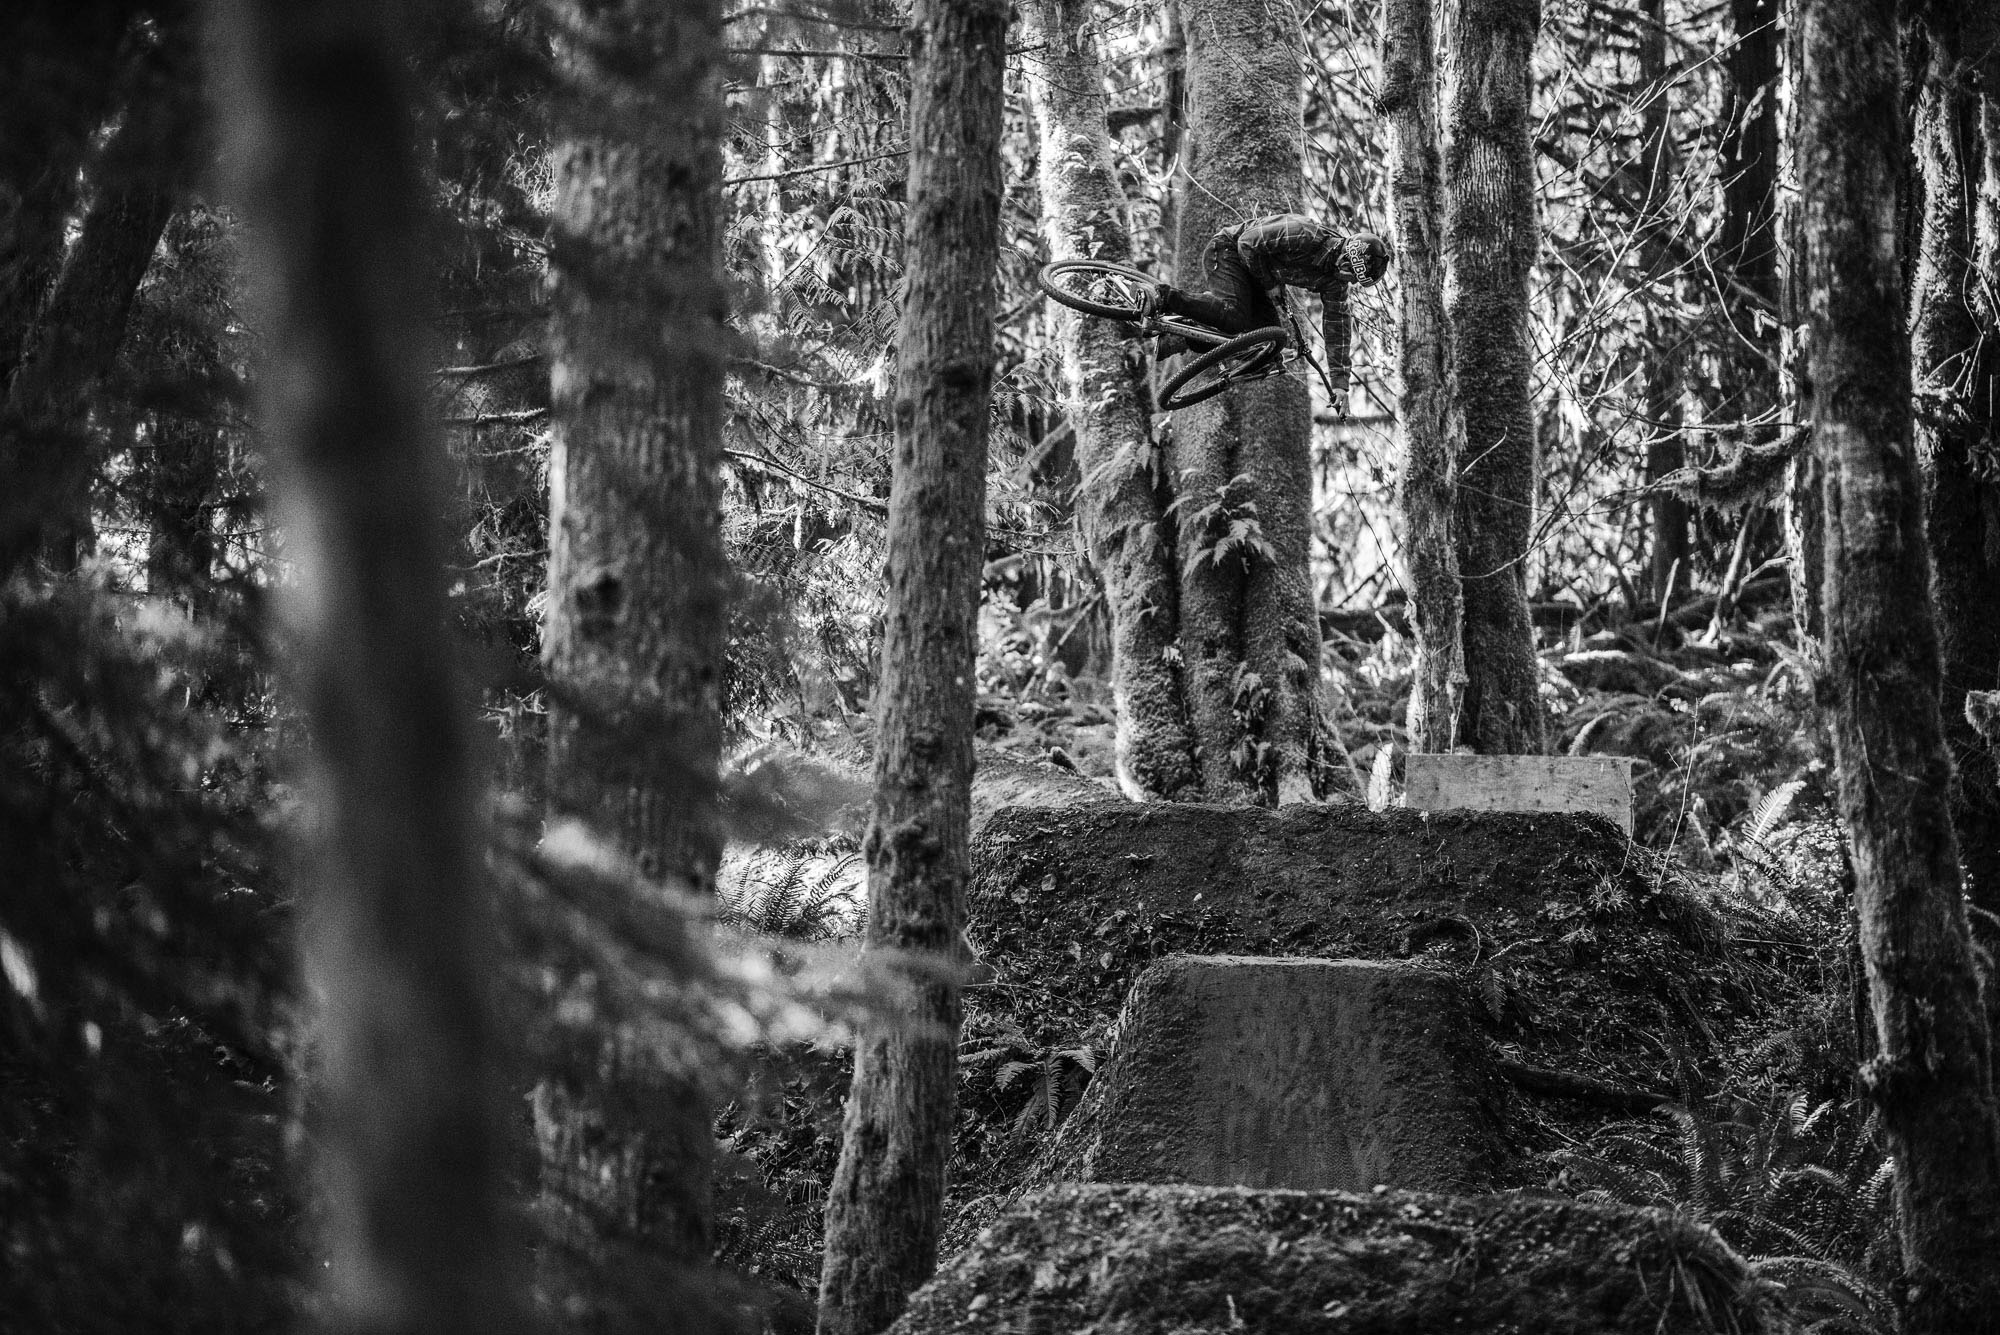 Sombrio Athlete Darren Berrecloth on his jumps near Nanaimo, BC by Margus Riga